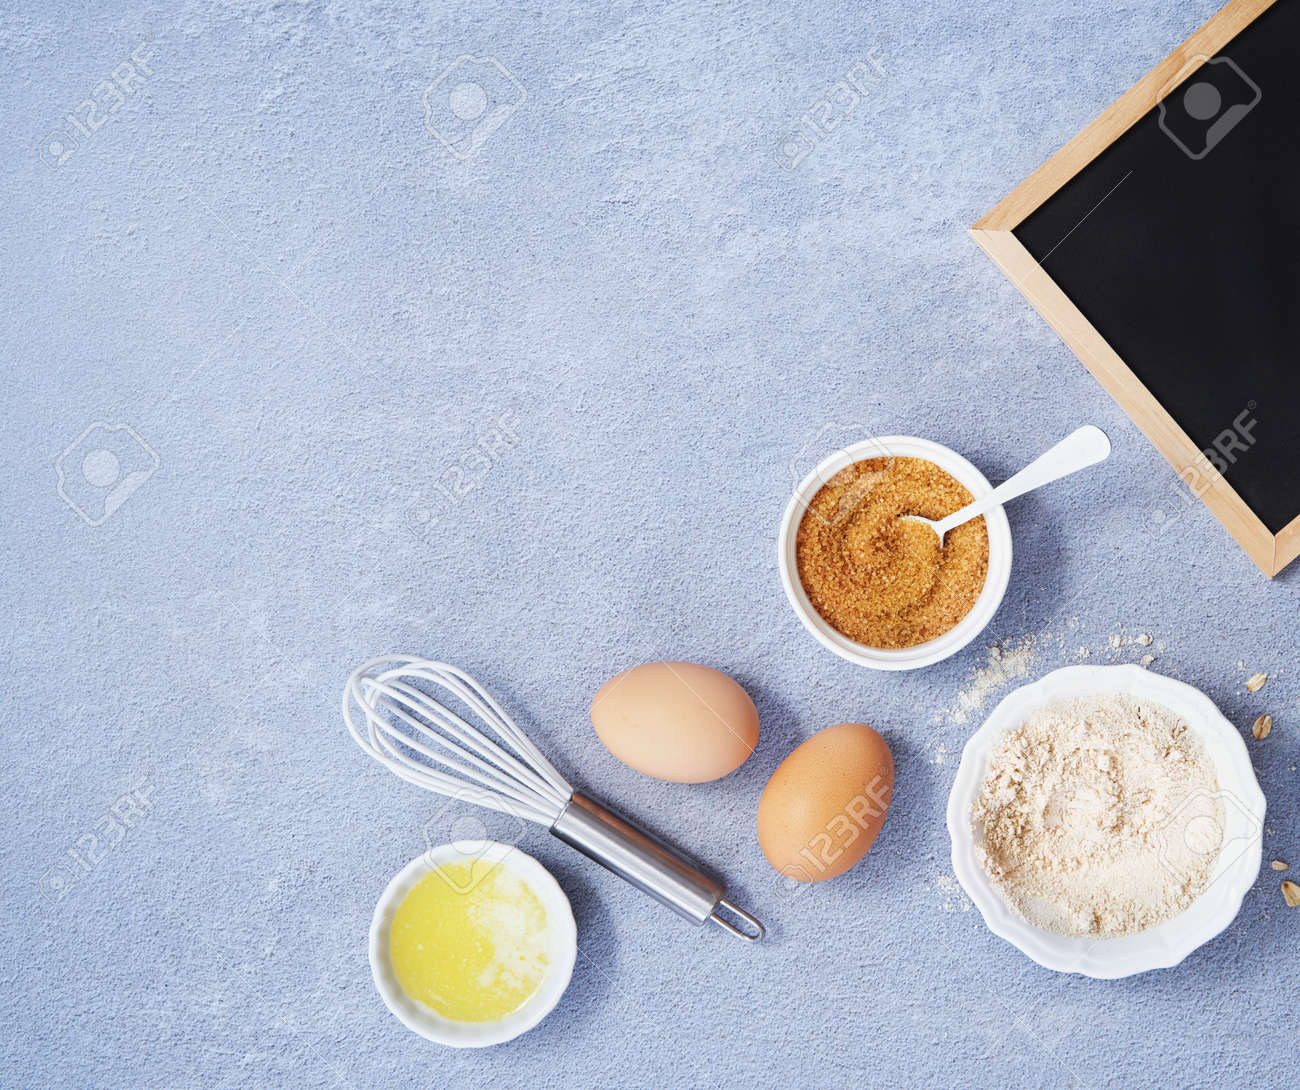 Ingredients for homemade oat pancake with whole grain oat, coconut sugar, vanilla syrup, organic eggs next to black chalkboard on light blue background. Healthy food recipe. Top view. Space for text. - 171806647